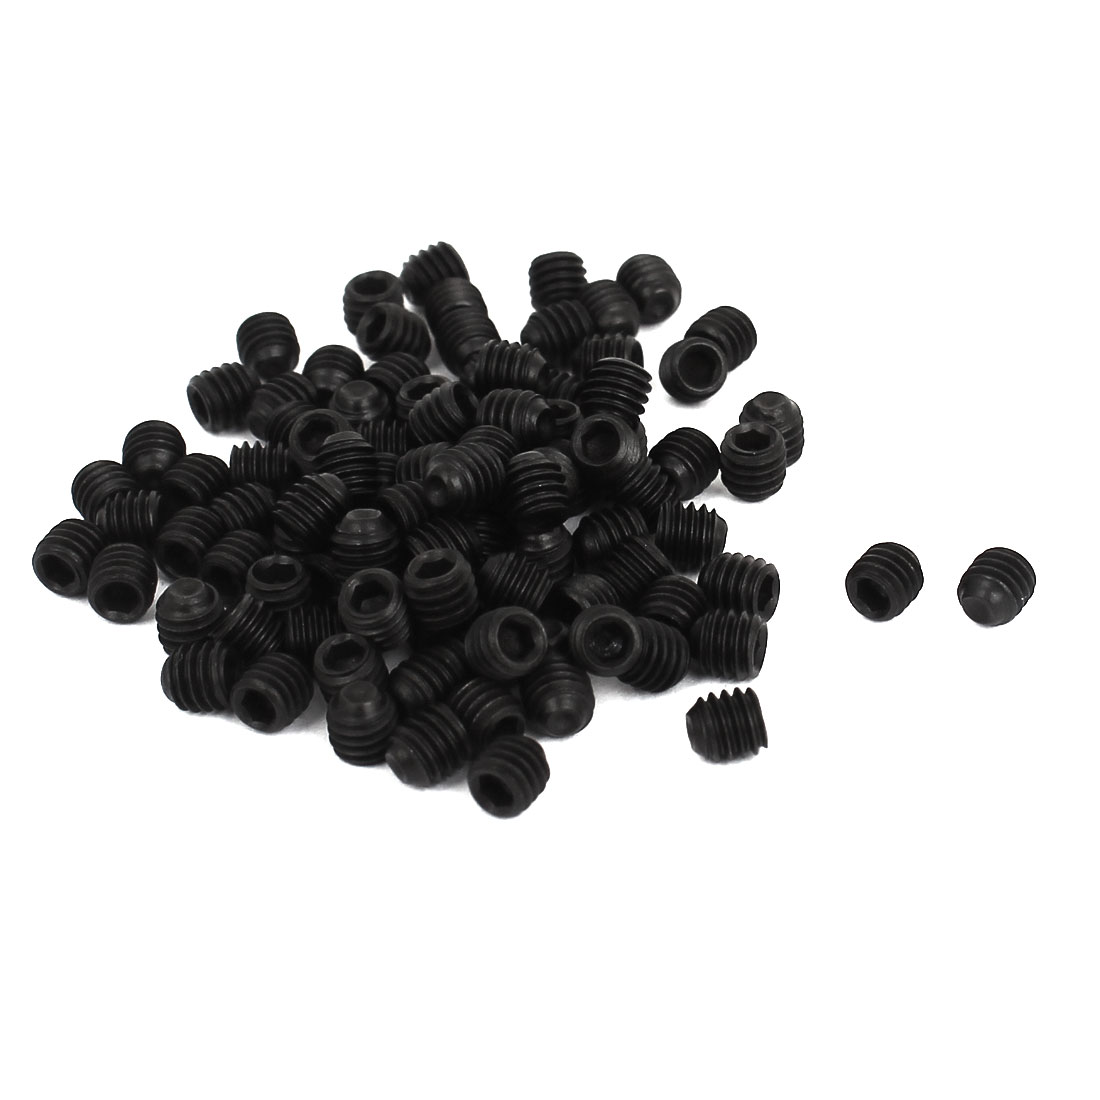 "4mm x 5/32"" 0.7mm Pitch Hex Socket Set Cap Point Grub Screws Black 100pcs"